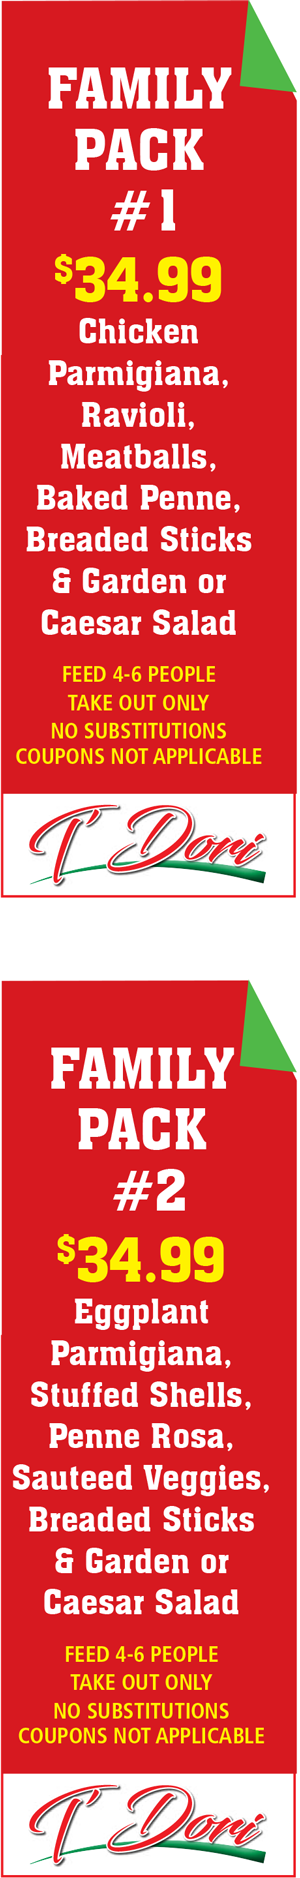 T'Dori Takeout family packs